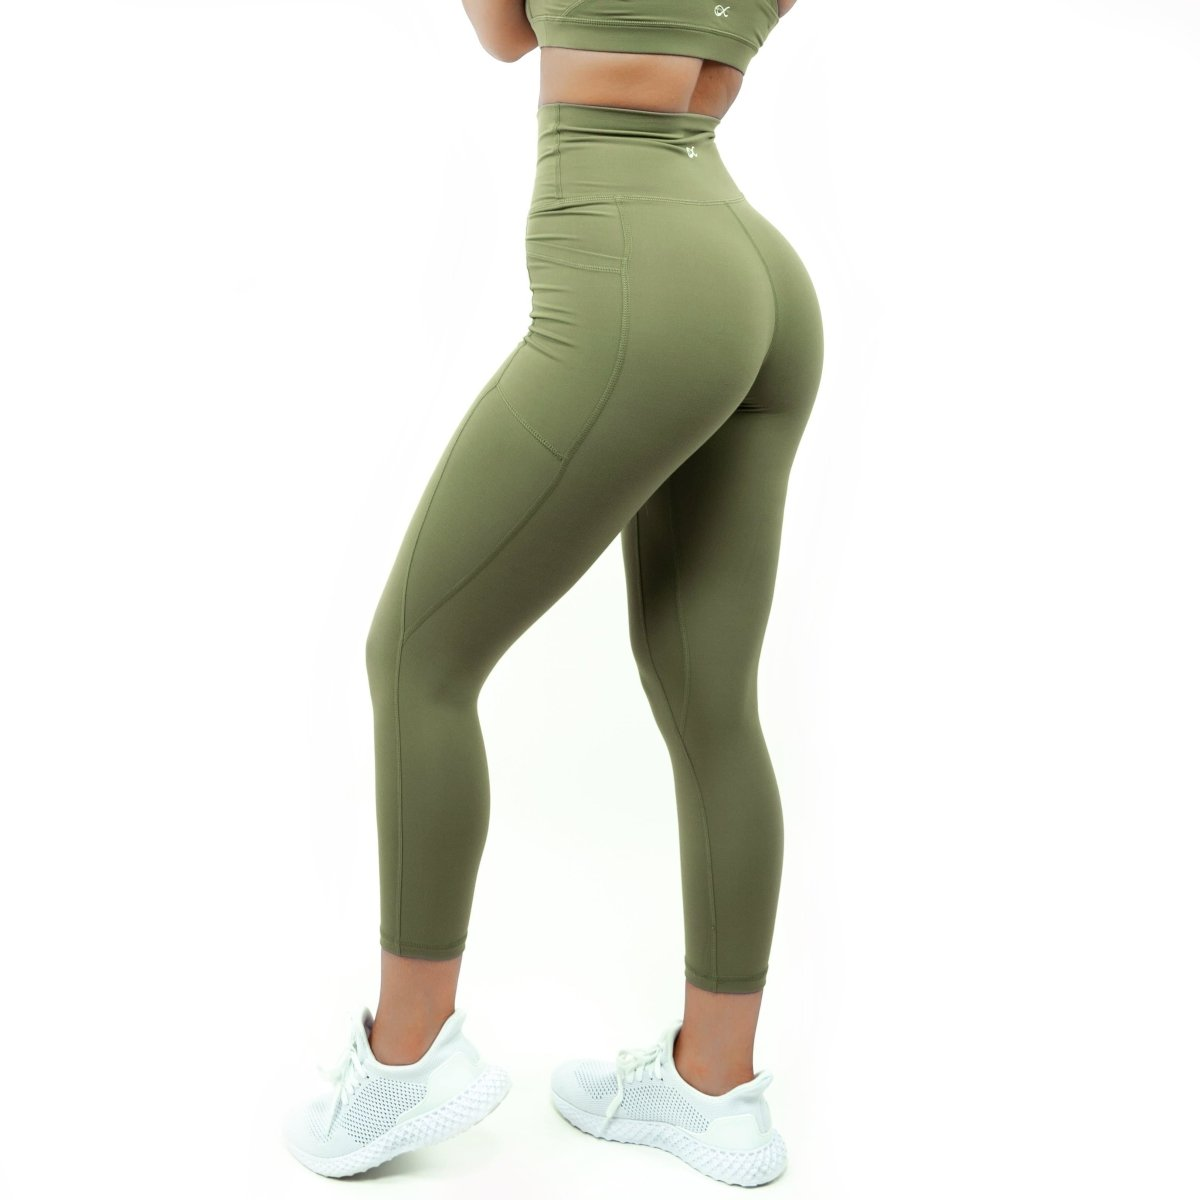 Pocket Leggings in Capulet Olive - Southern Athletica